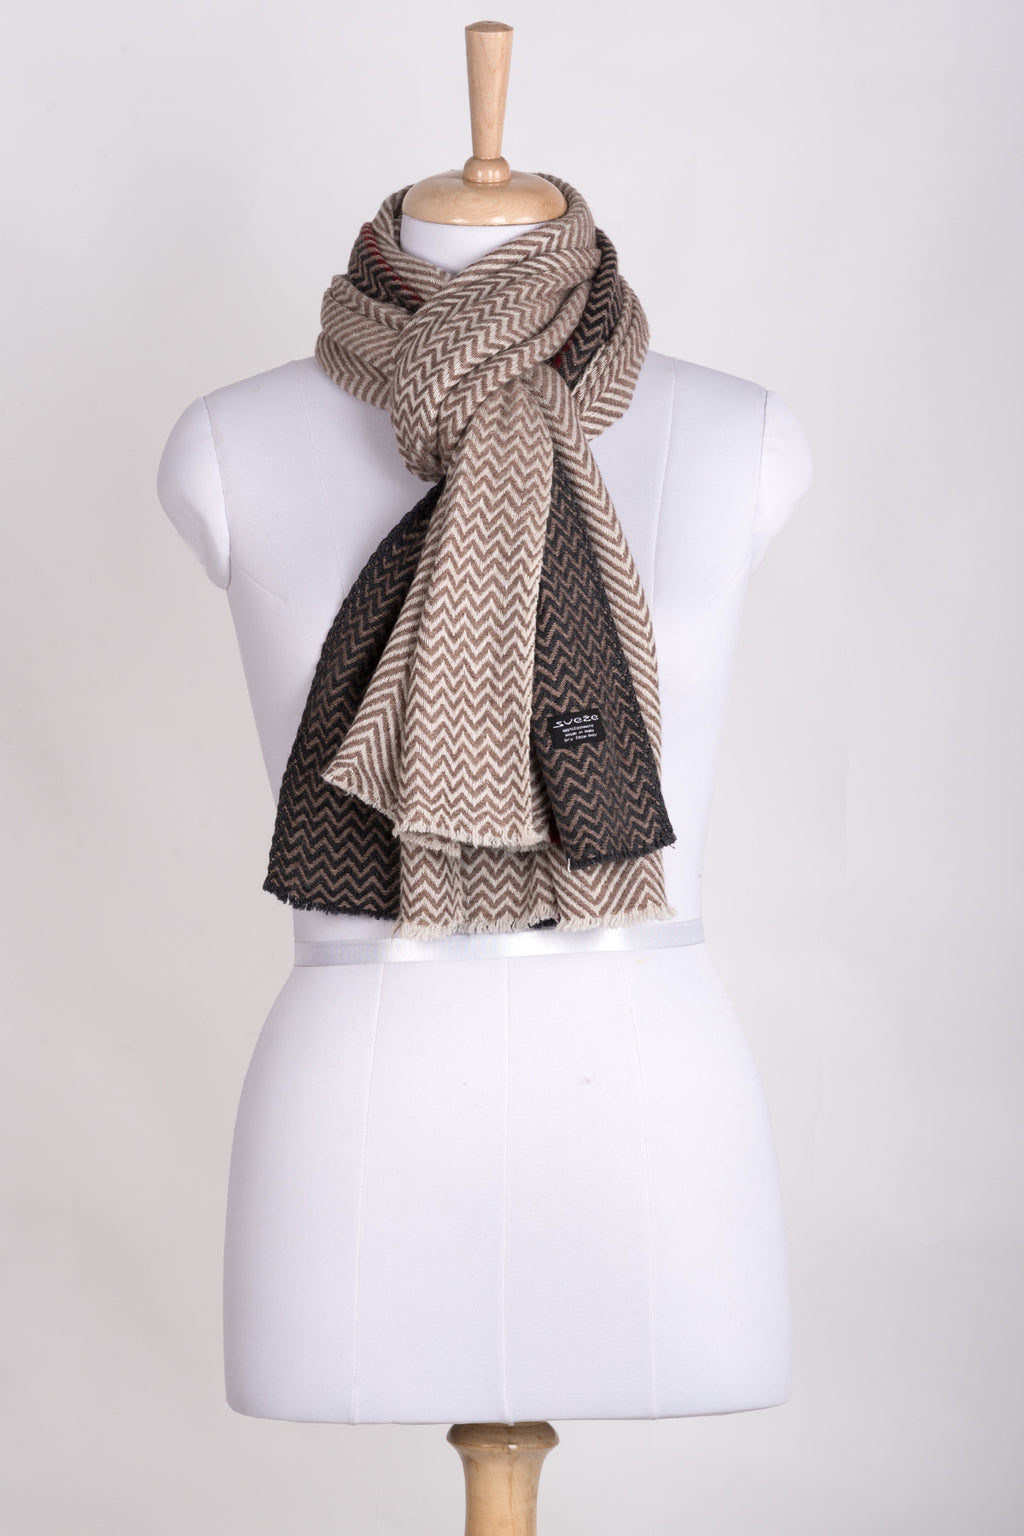 Chevron Bands Cashmere Wool Scarf - Beige Charcoal